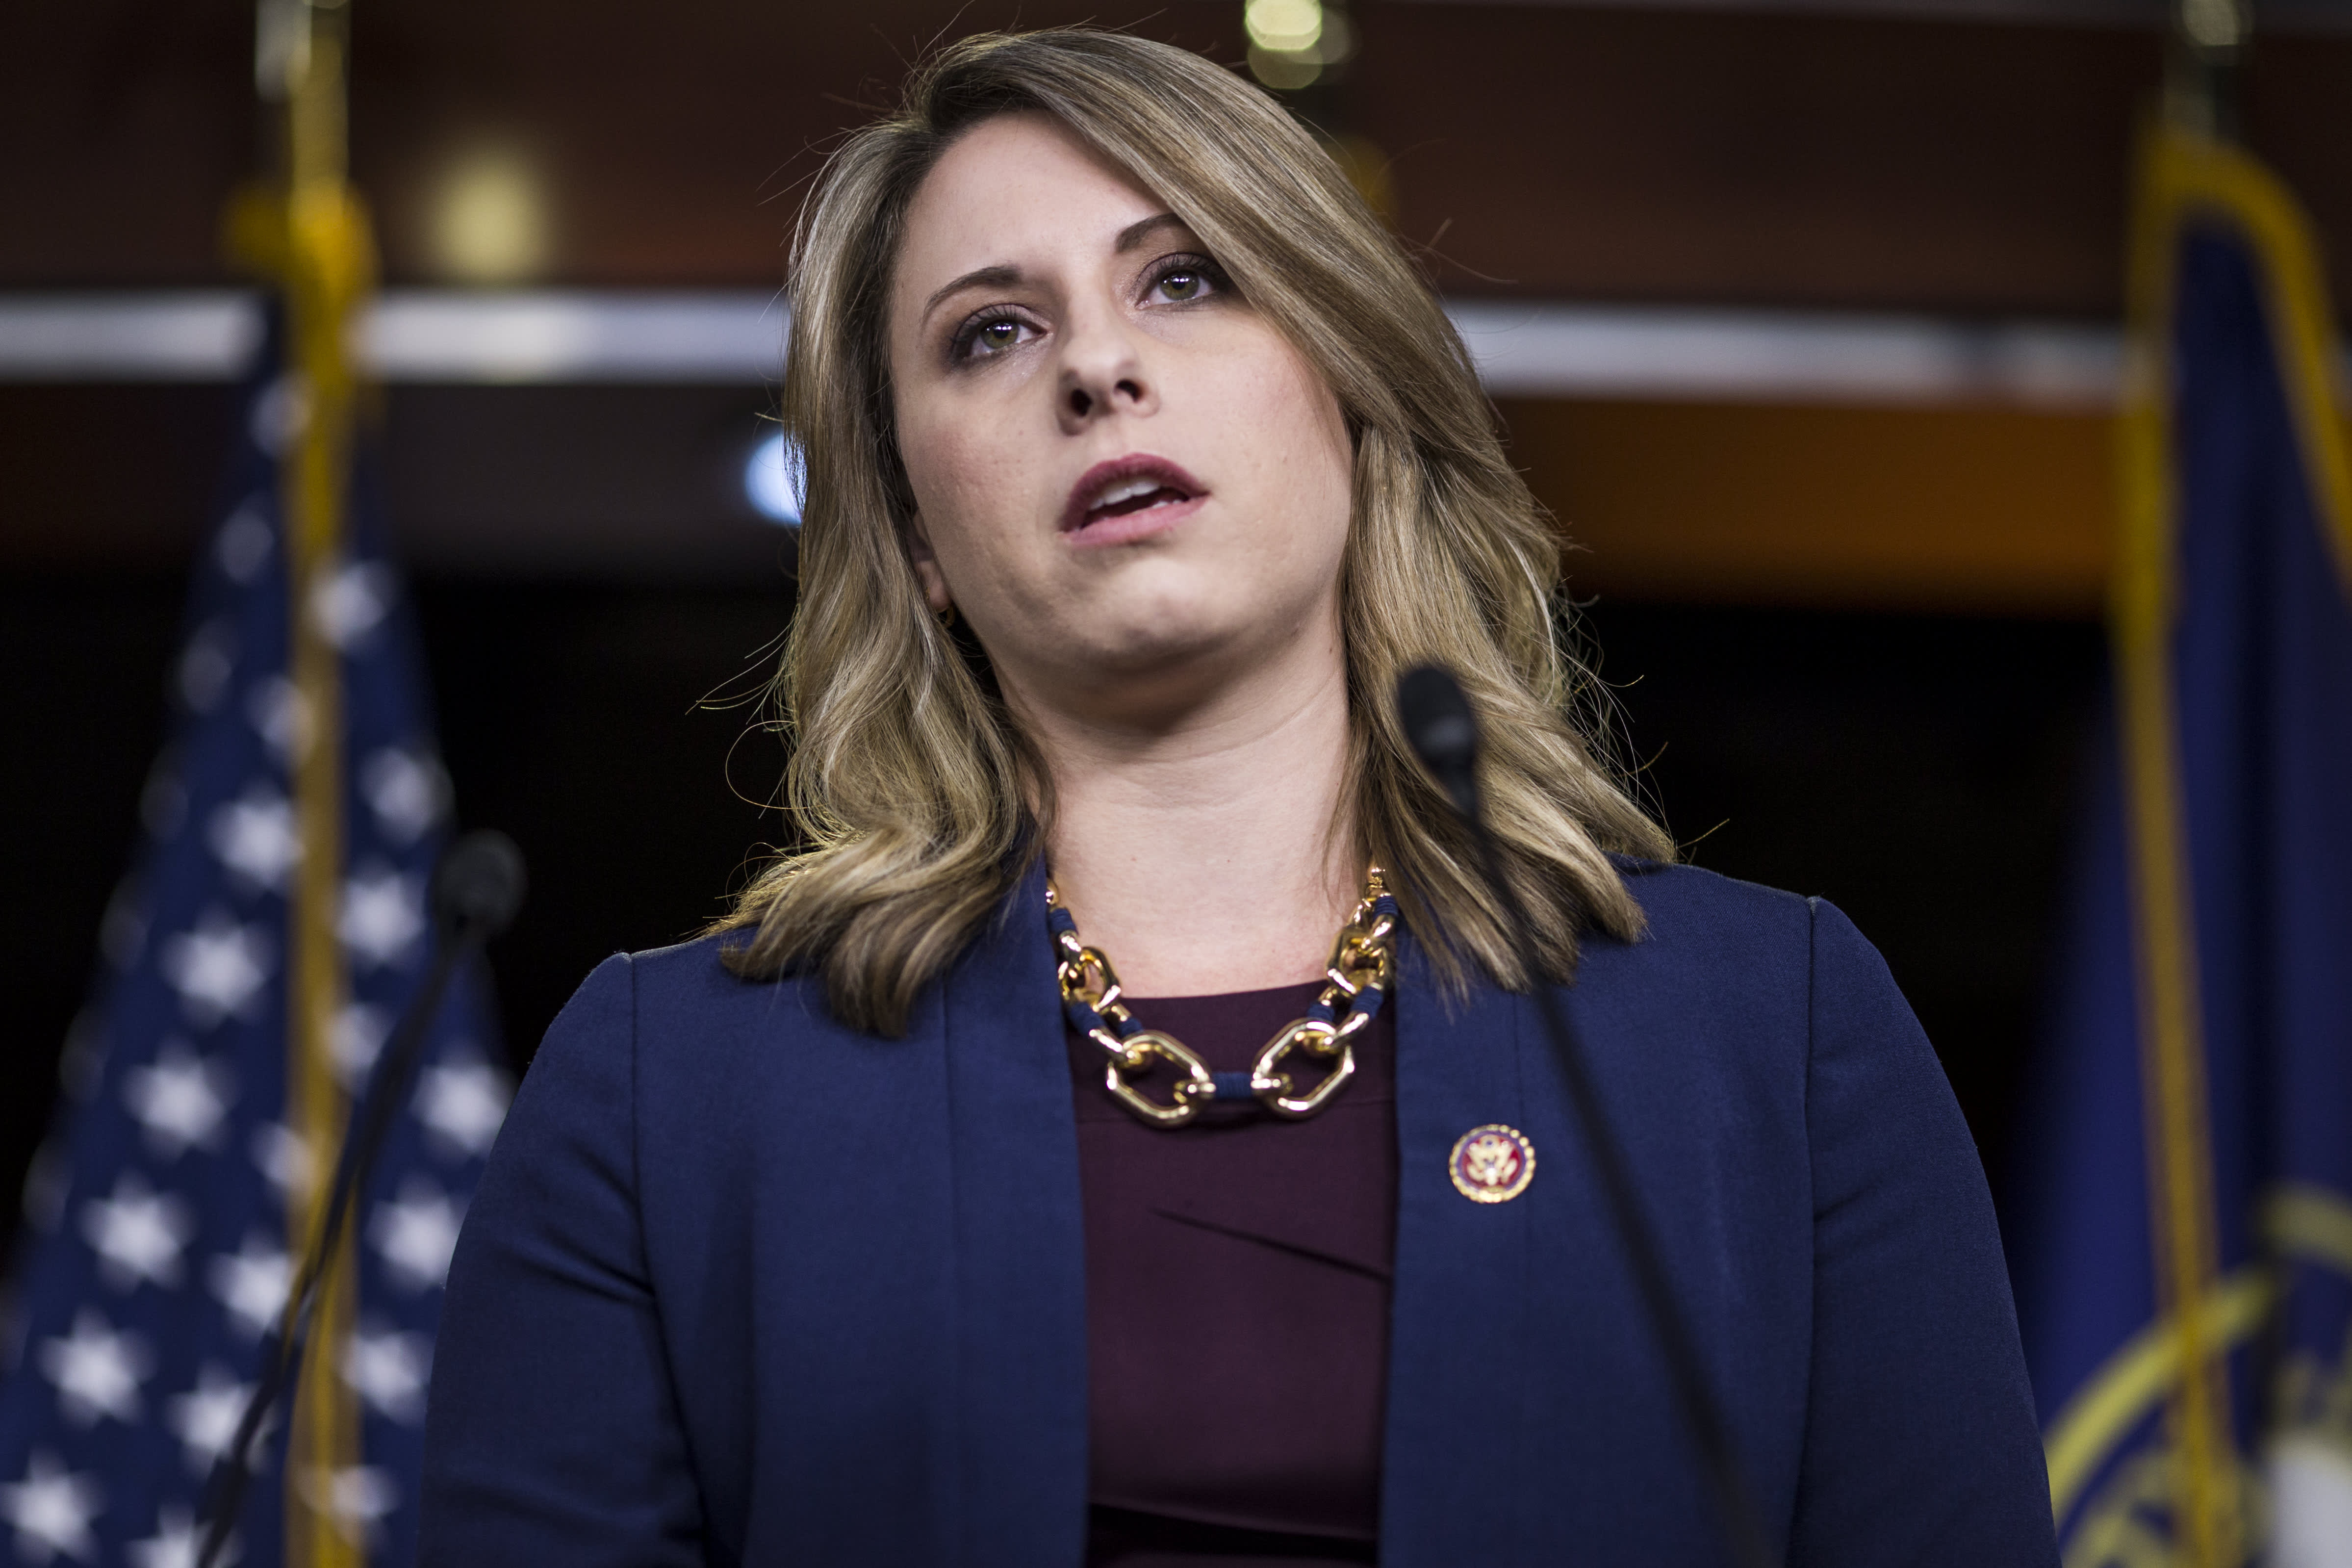 Rep. Katie Hill admits to having a relationship with a staffer after the announcement of an ethics probe